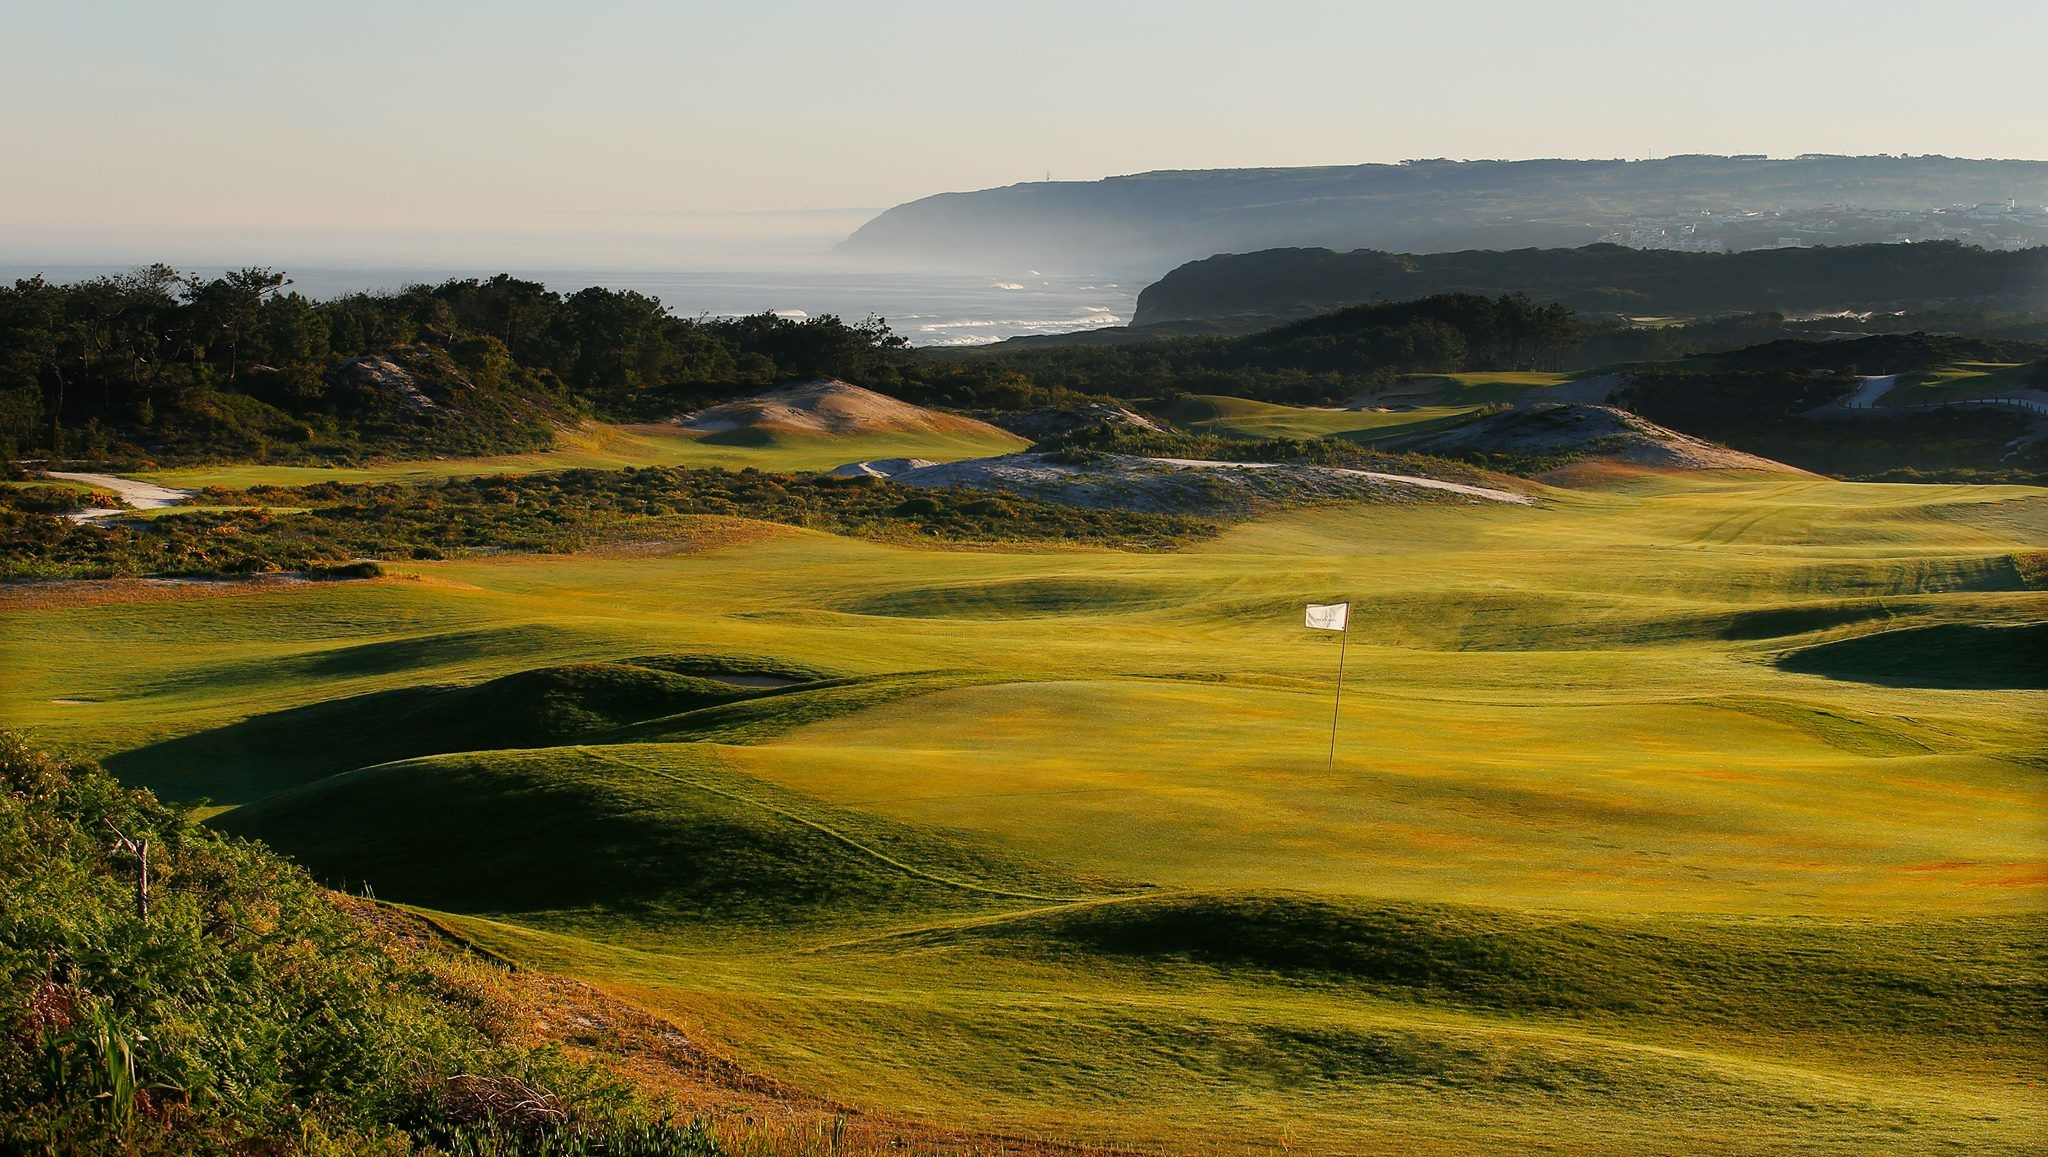 West cliffs golf links cover picture